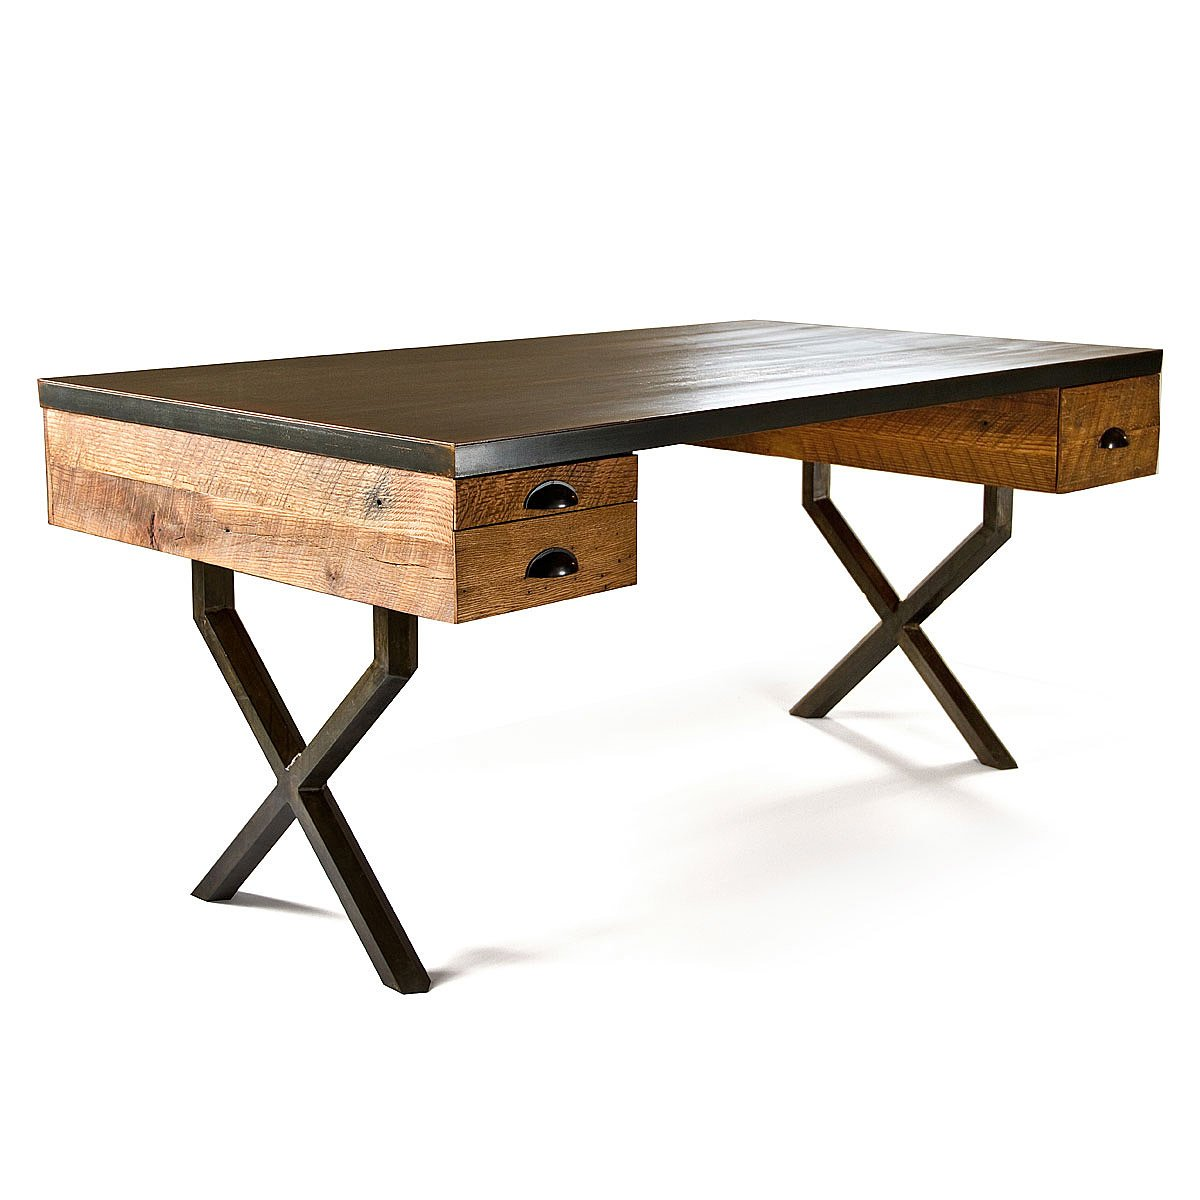 #A36428 Walter Desk Wood & Metal Work Table UncommonGoods with 1200x1200 px of Highly Rated Table Desk Wood 12001200 picture/photo @ avoidforclosure.info